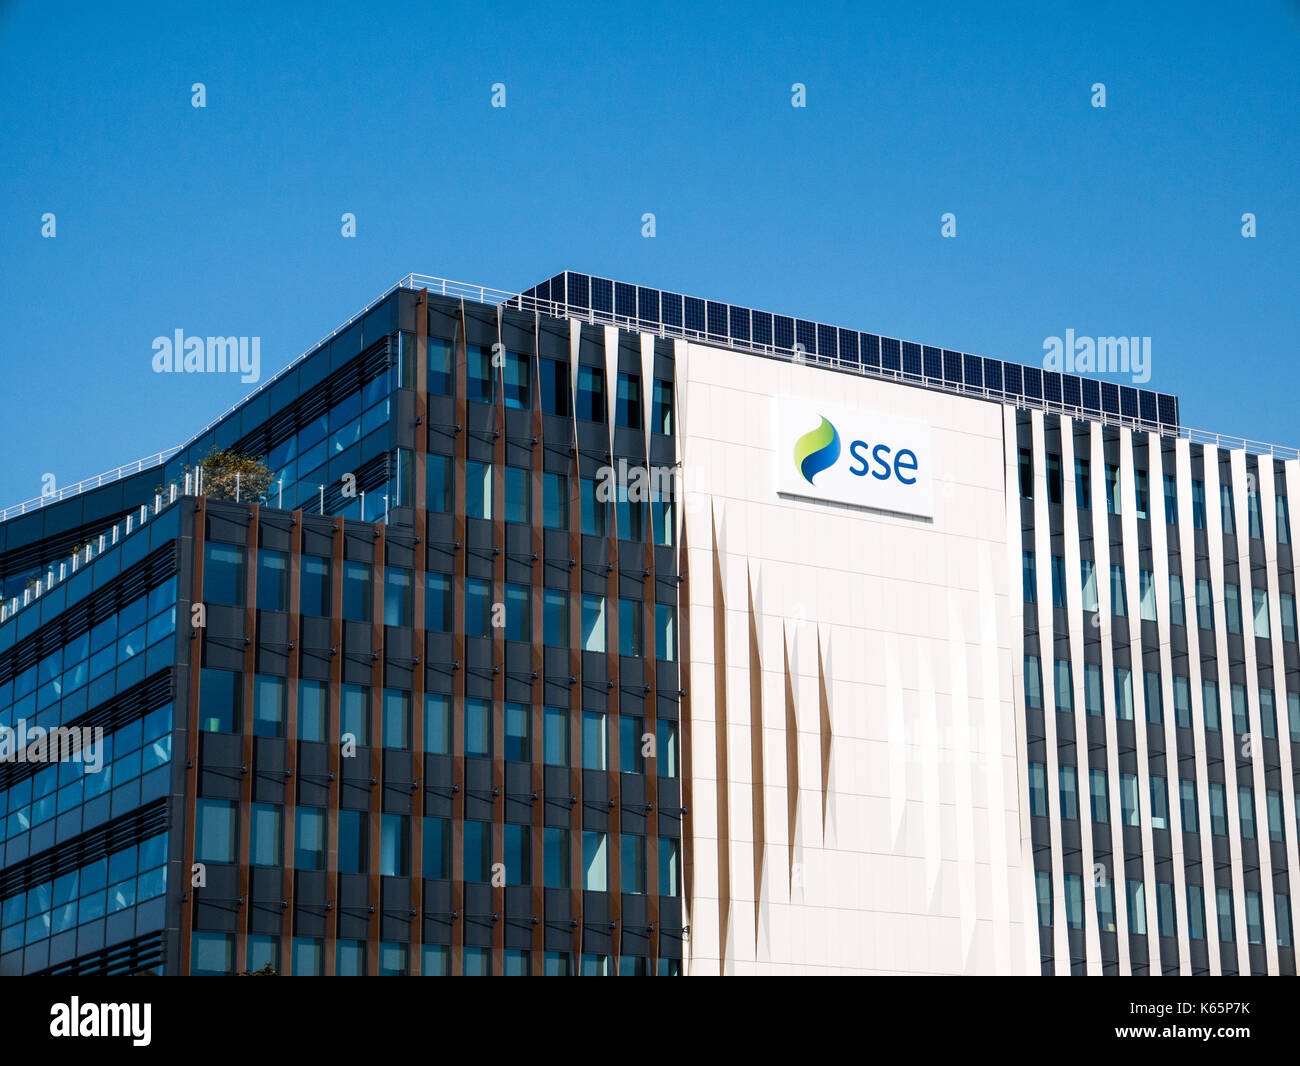 Sse Power Stock Photos Amp Sse Power Stock Images Alamy